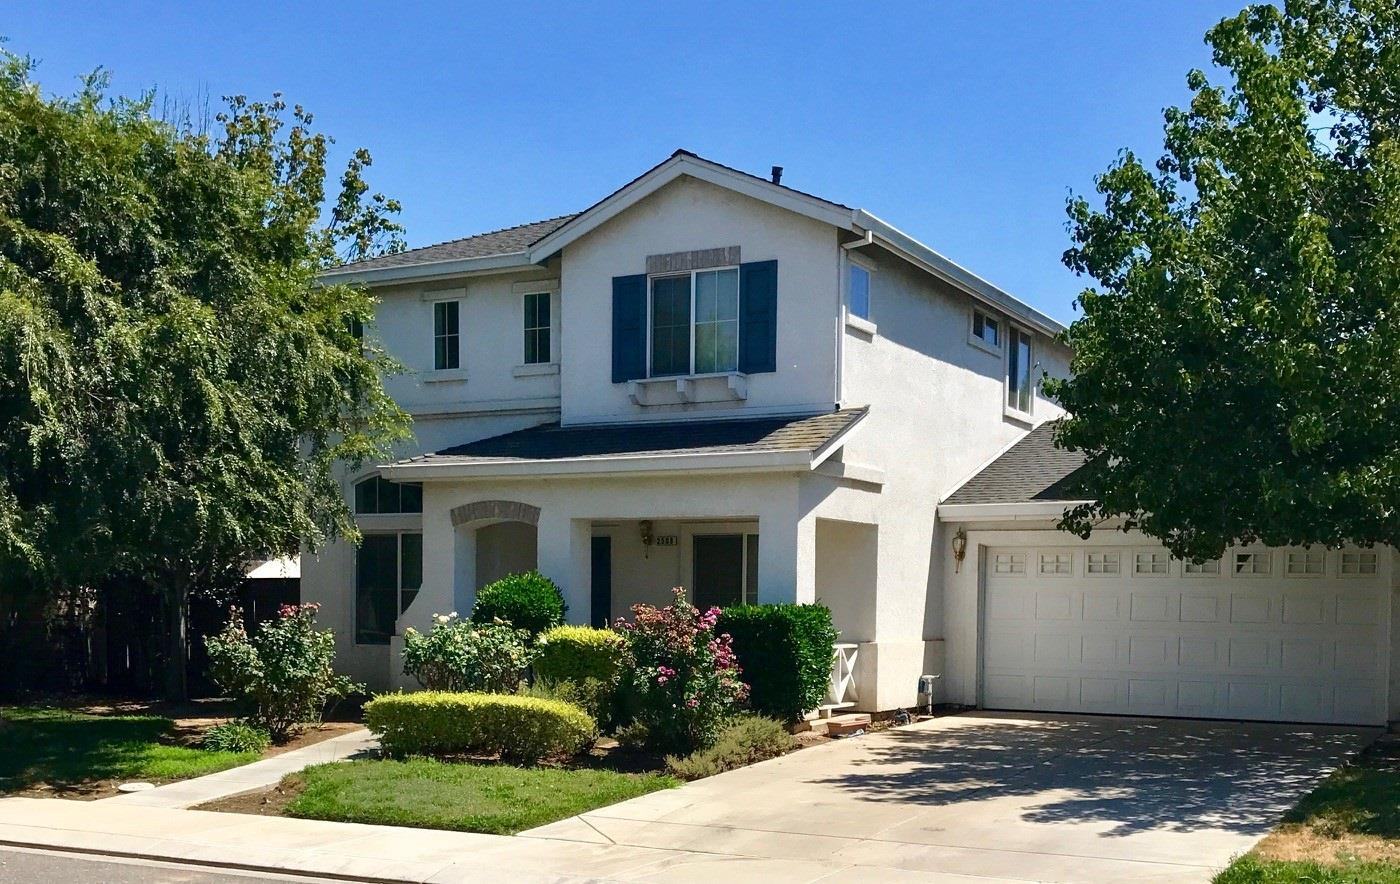 Single Family Home for Sale at 2508 Rose Hill Lane Riverbank, California 95367 United States